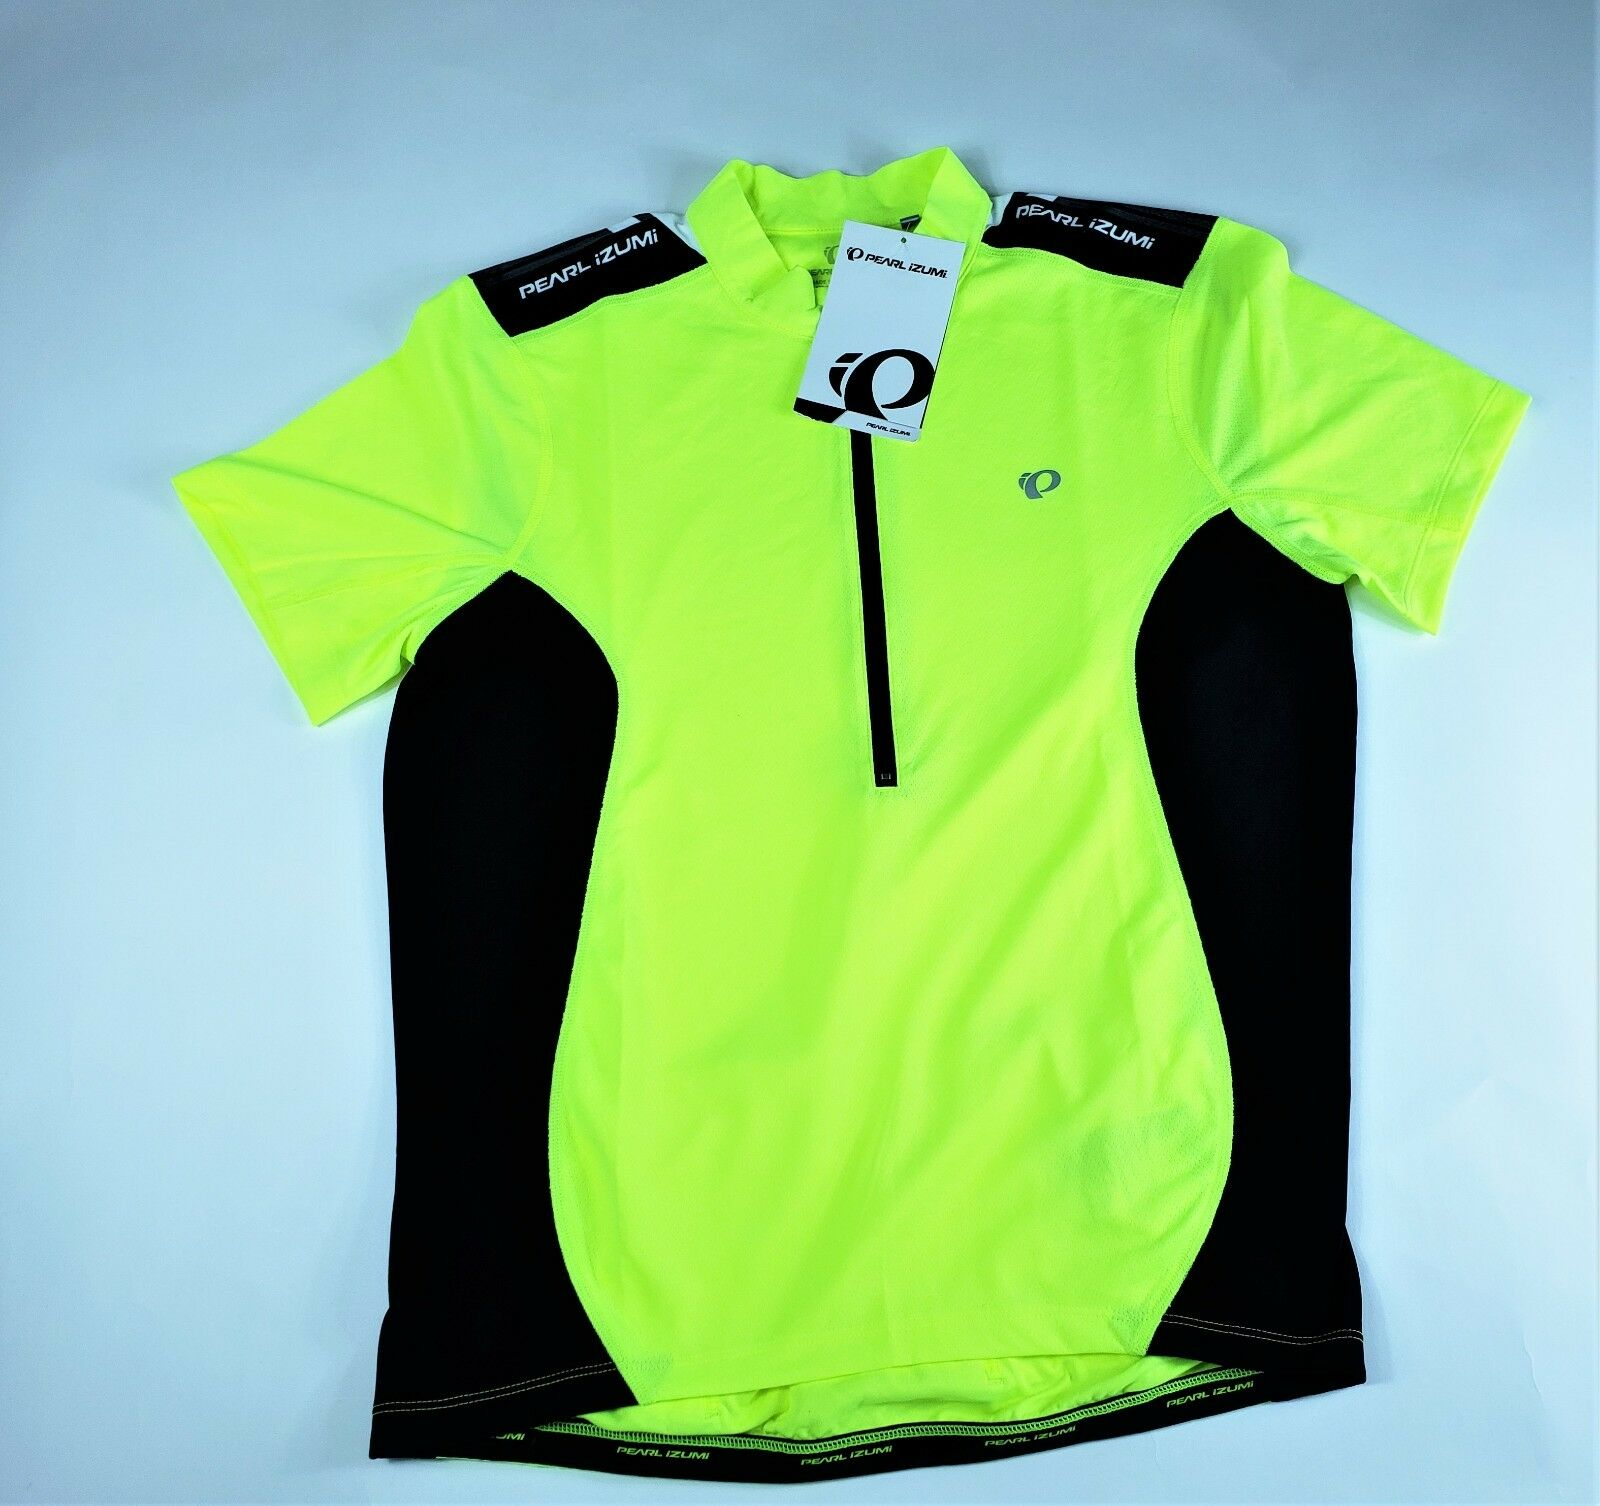 Men's Pearl Pursuit Short Sleeve Select Quest Jersey Size M   save on clearance